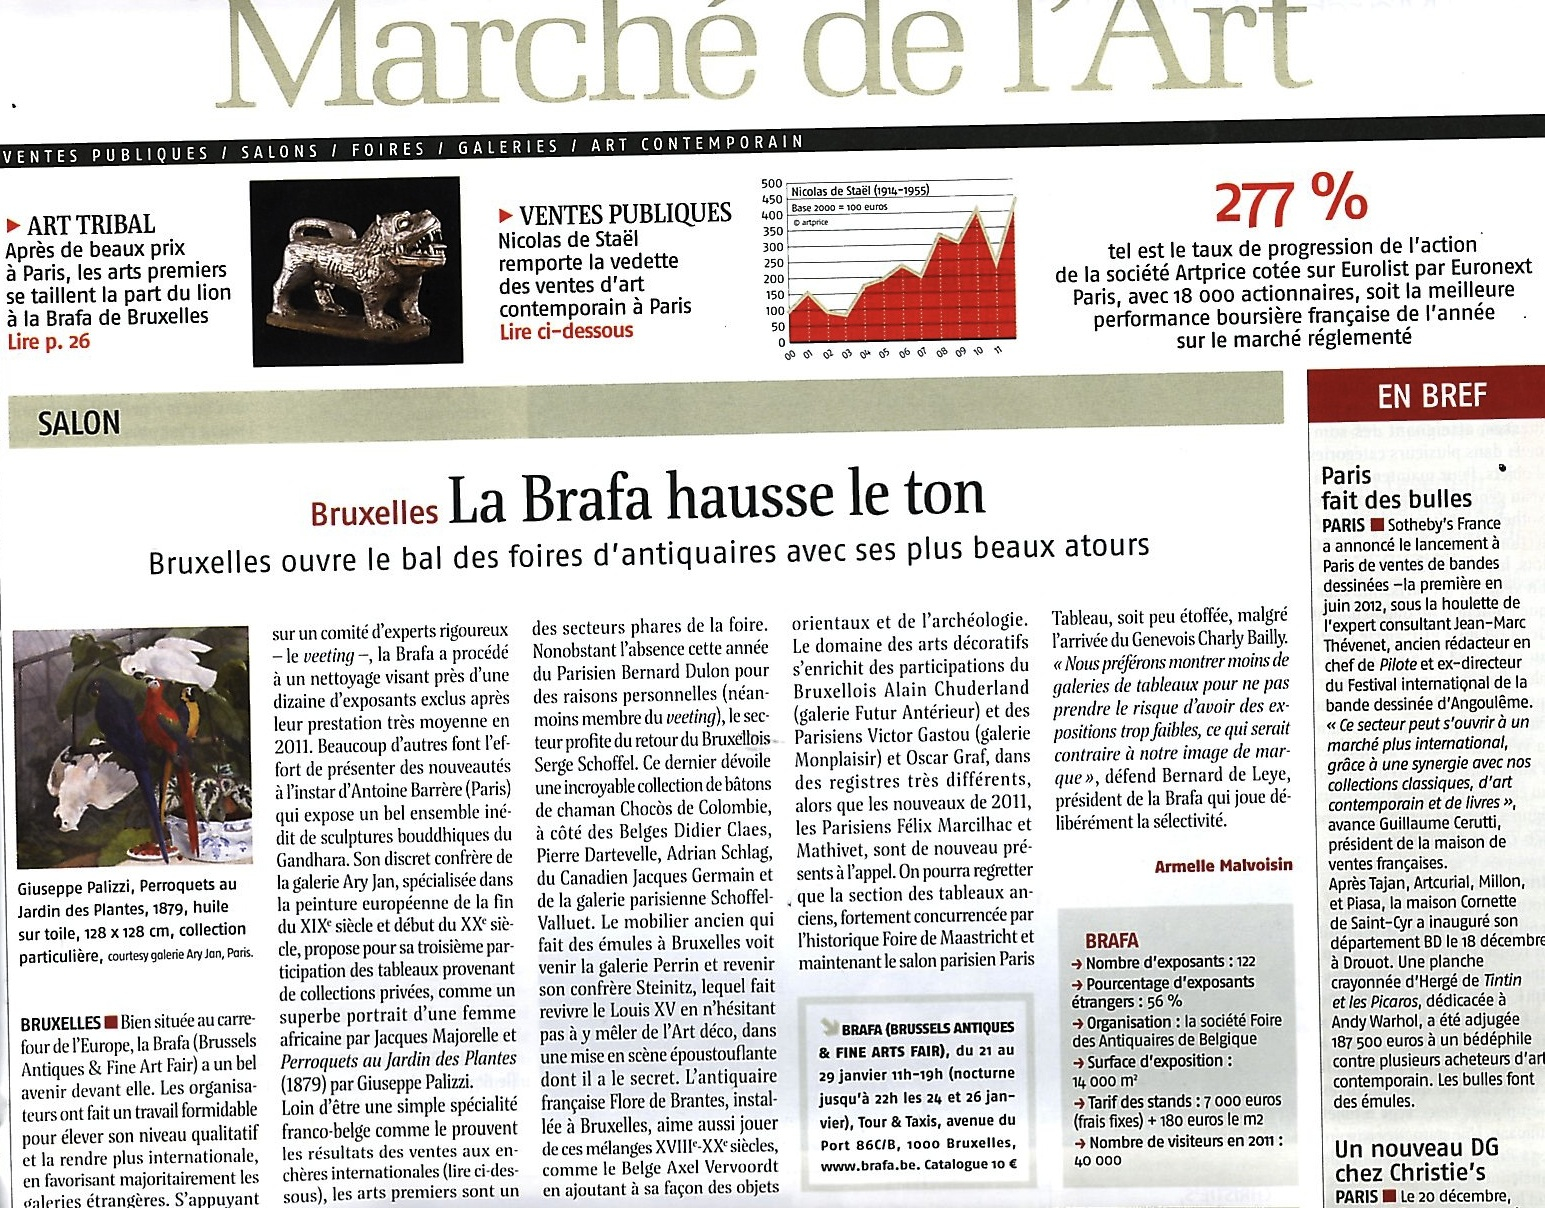 Le Journal Des Arts — Jan. 2012